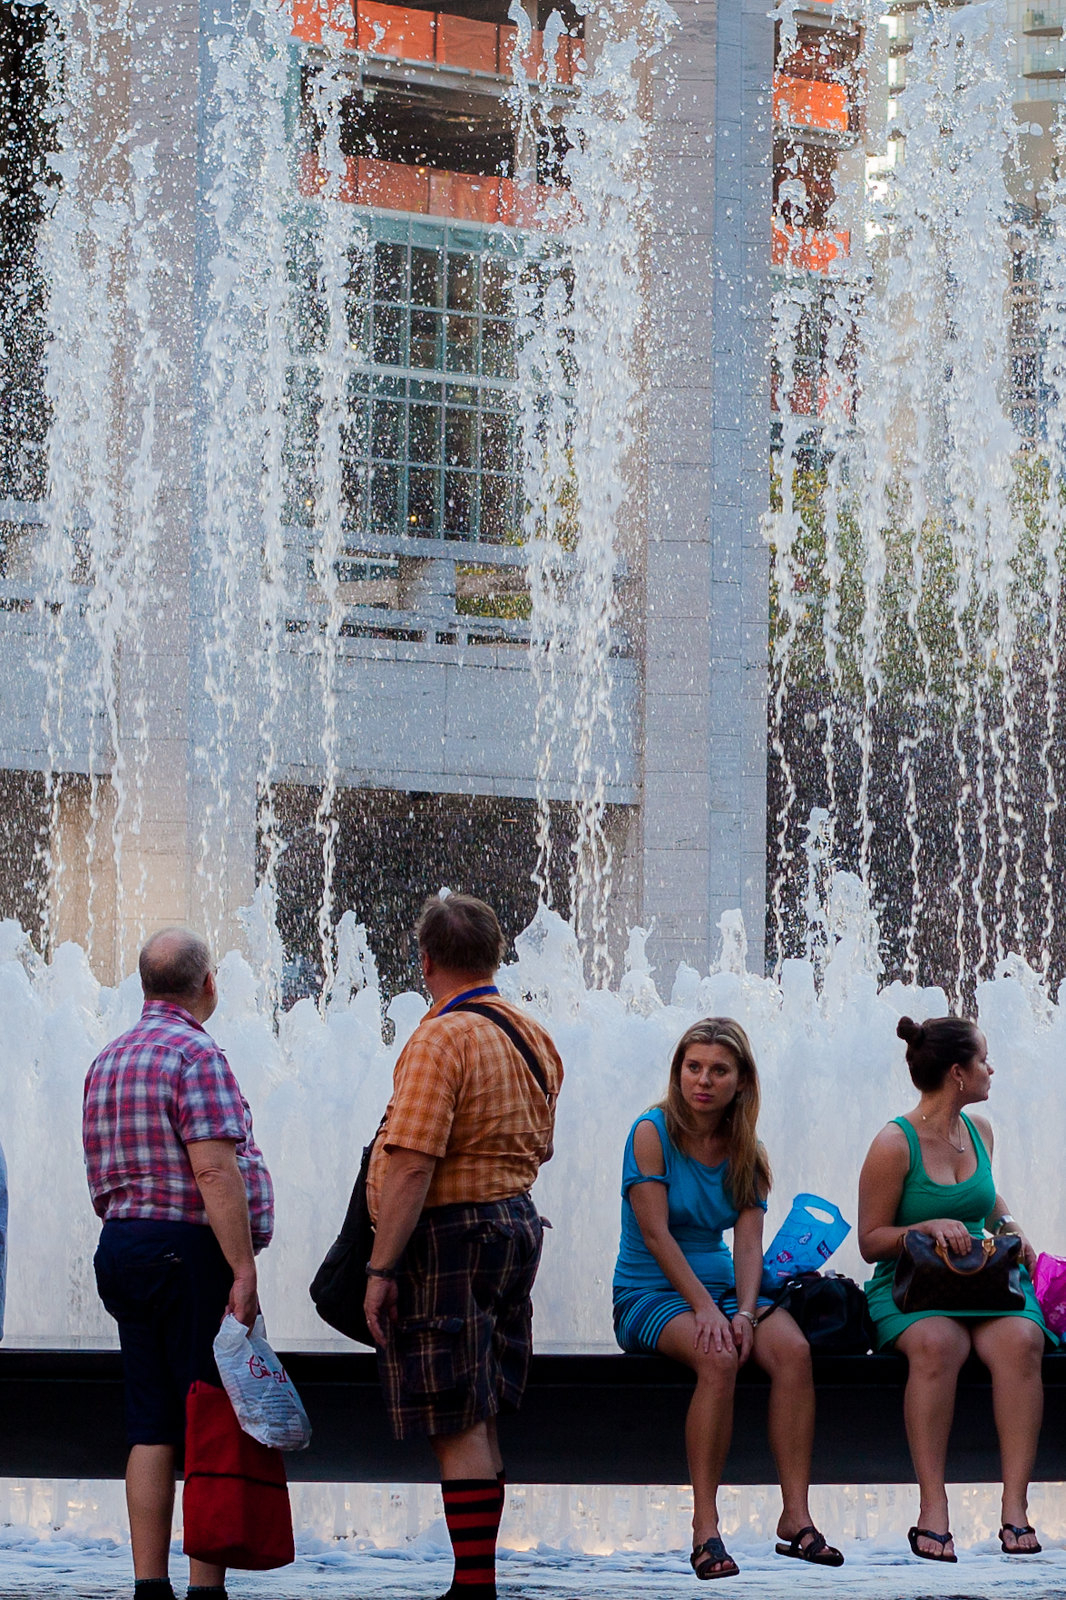 Watching the water dance in the fountain... by wwward0